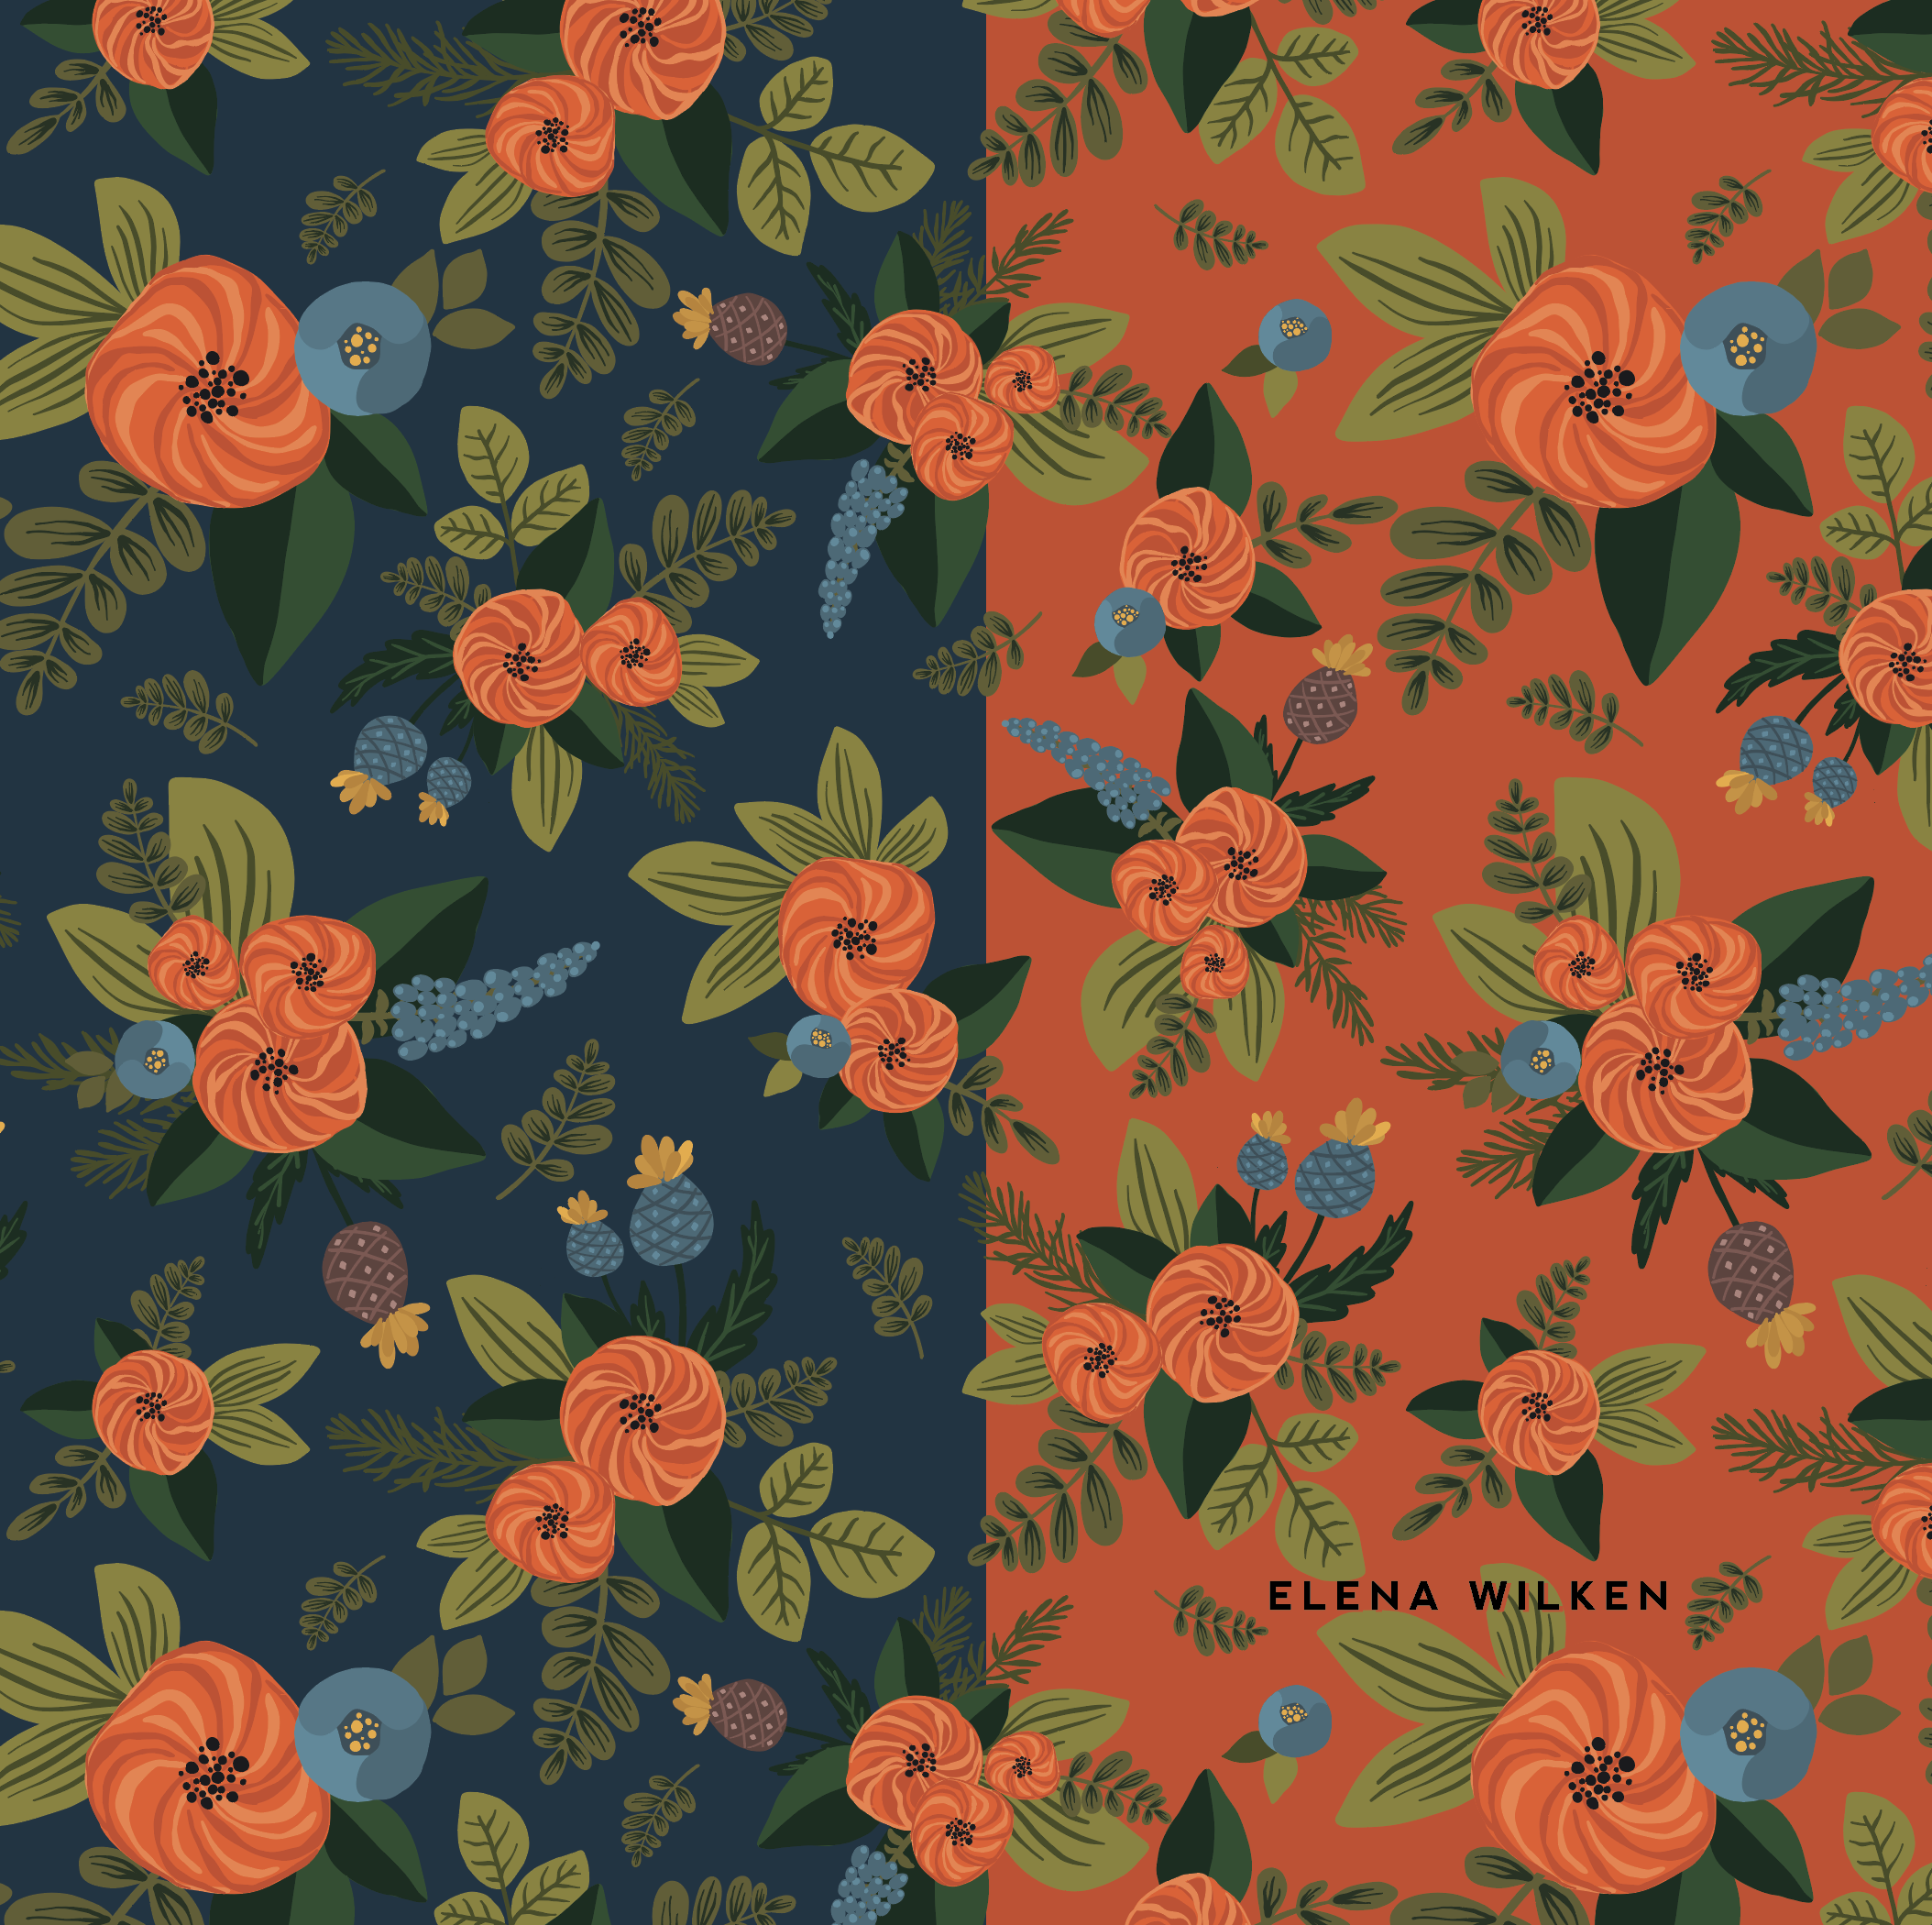 vector illustrations turned into a seamless floral surface pattern design - the dream is to see this one part of a fabric line one day, soon :)